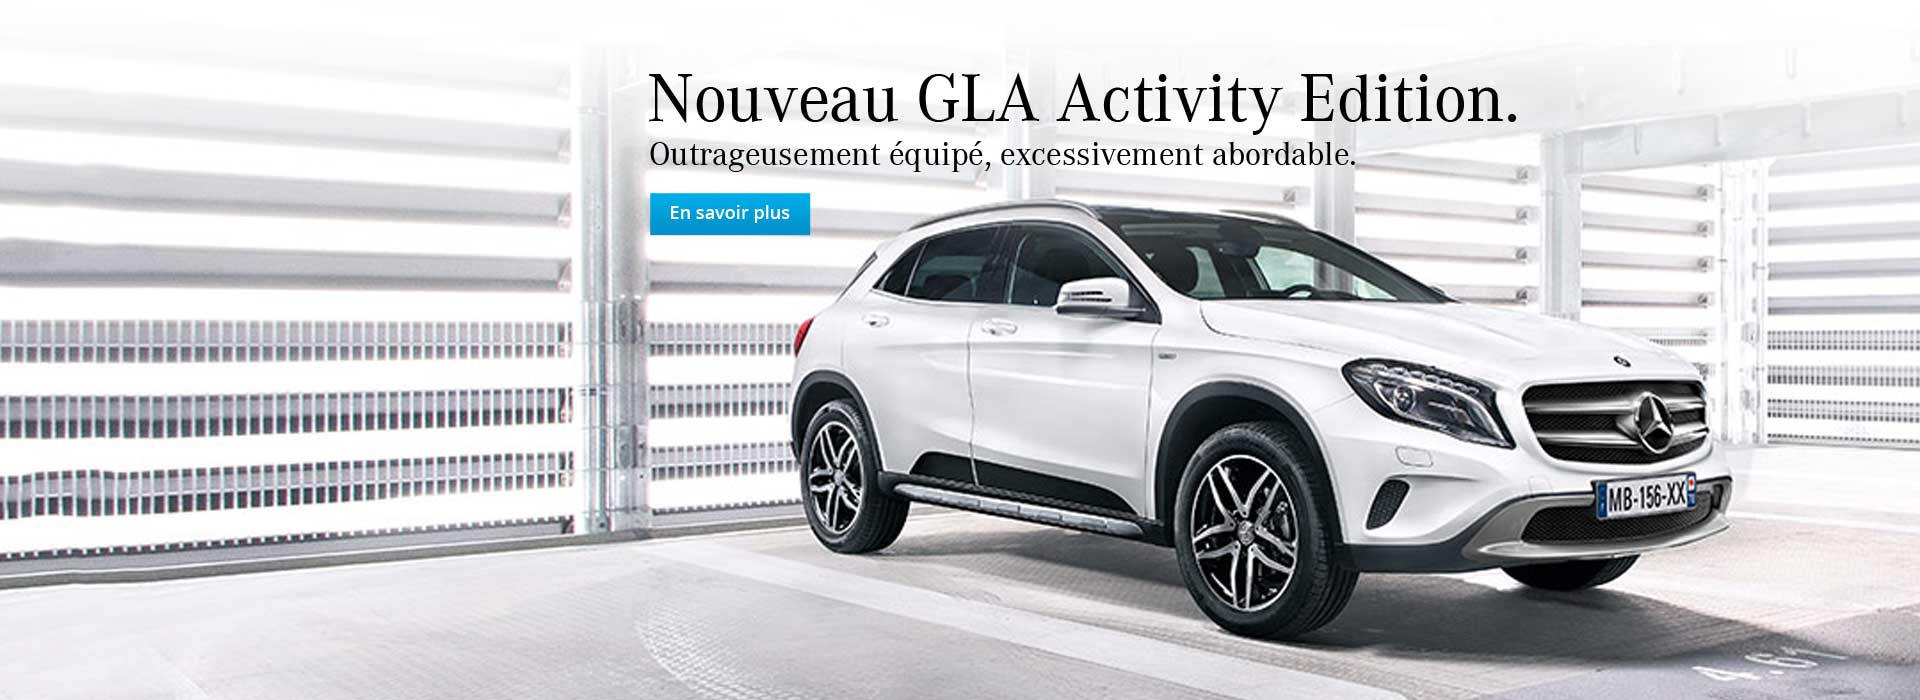 GLA ACTIVITY EDITION